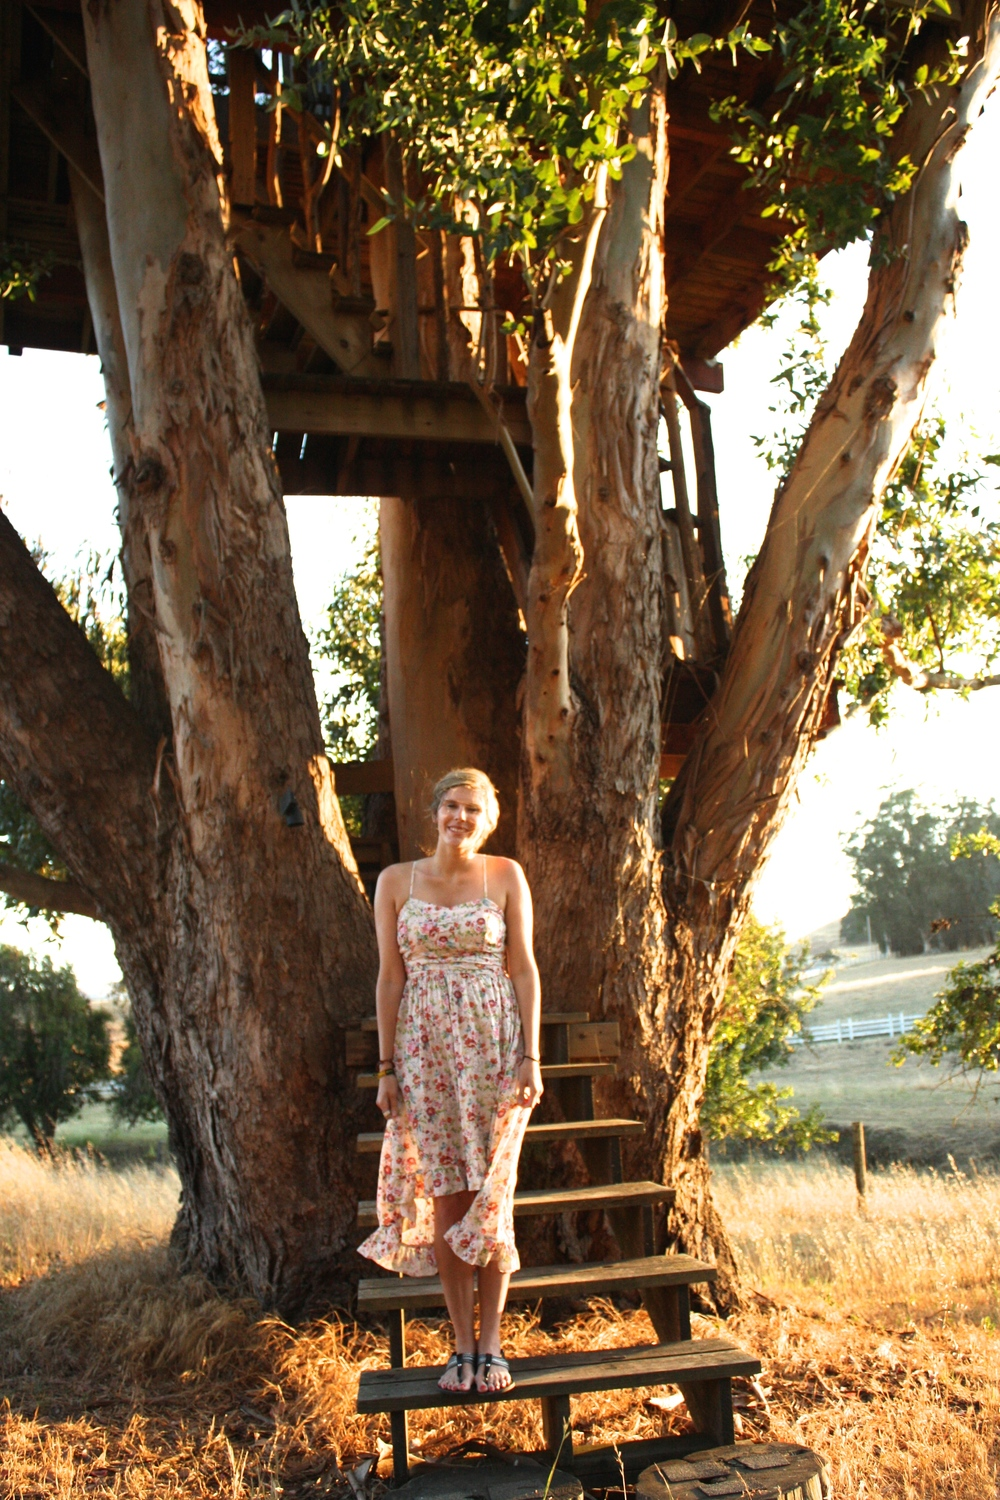 Our trip to Petaluma was AMAZING! We stayed in the  most glorious of treehouses !